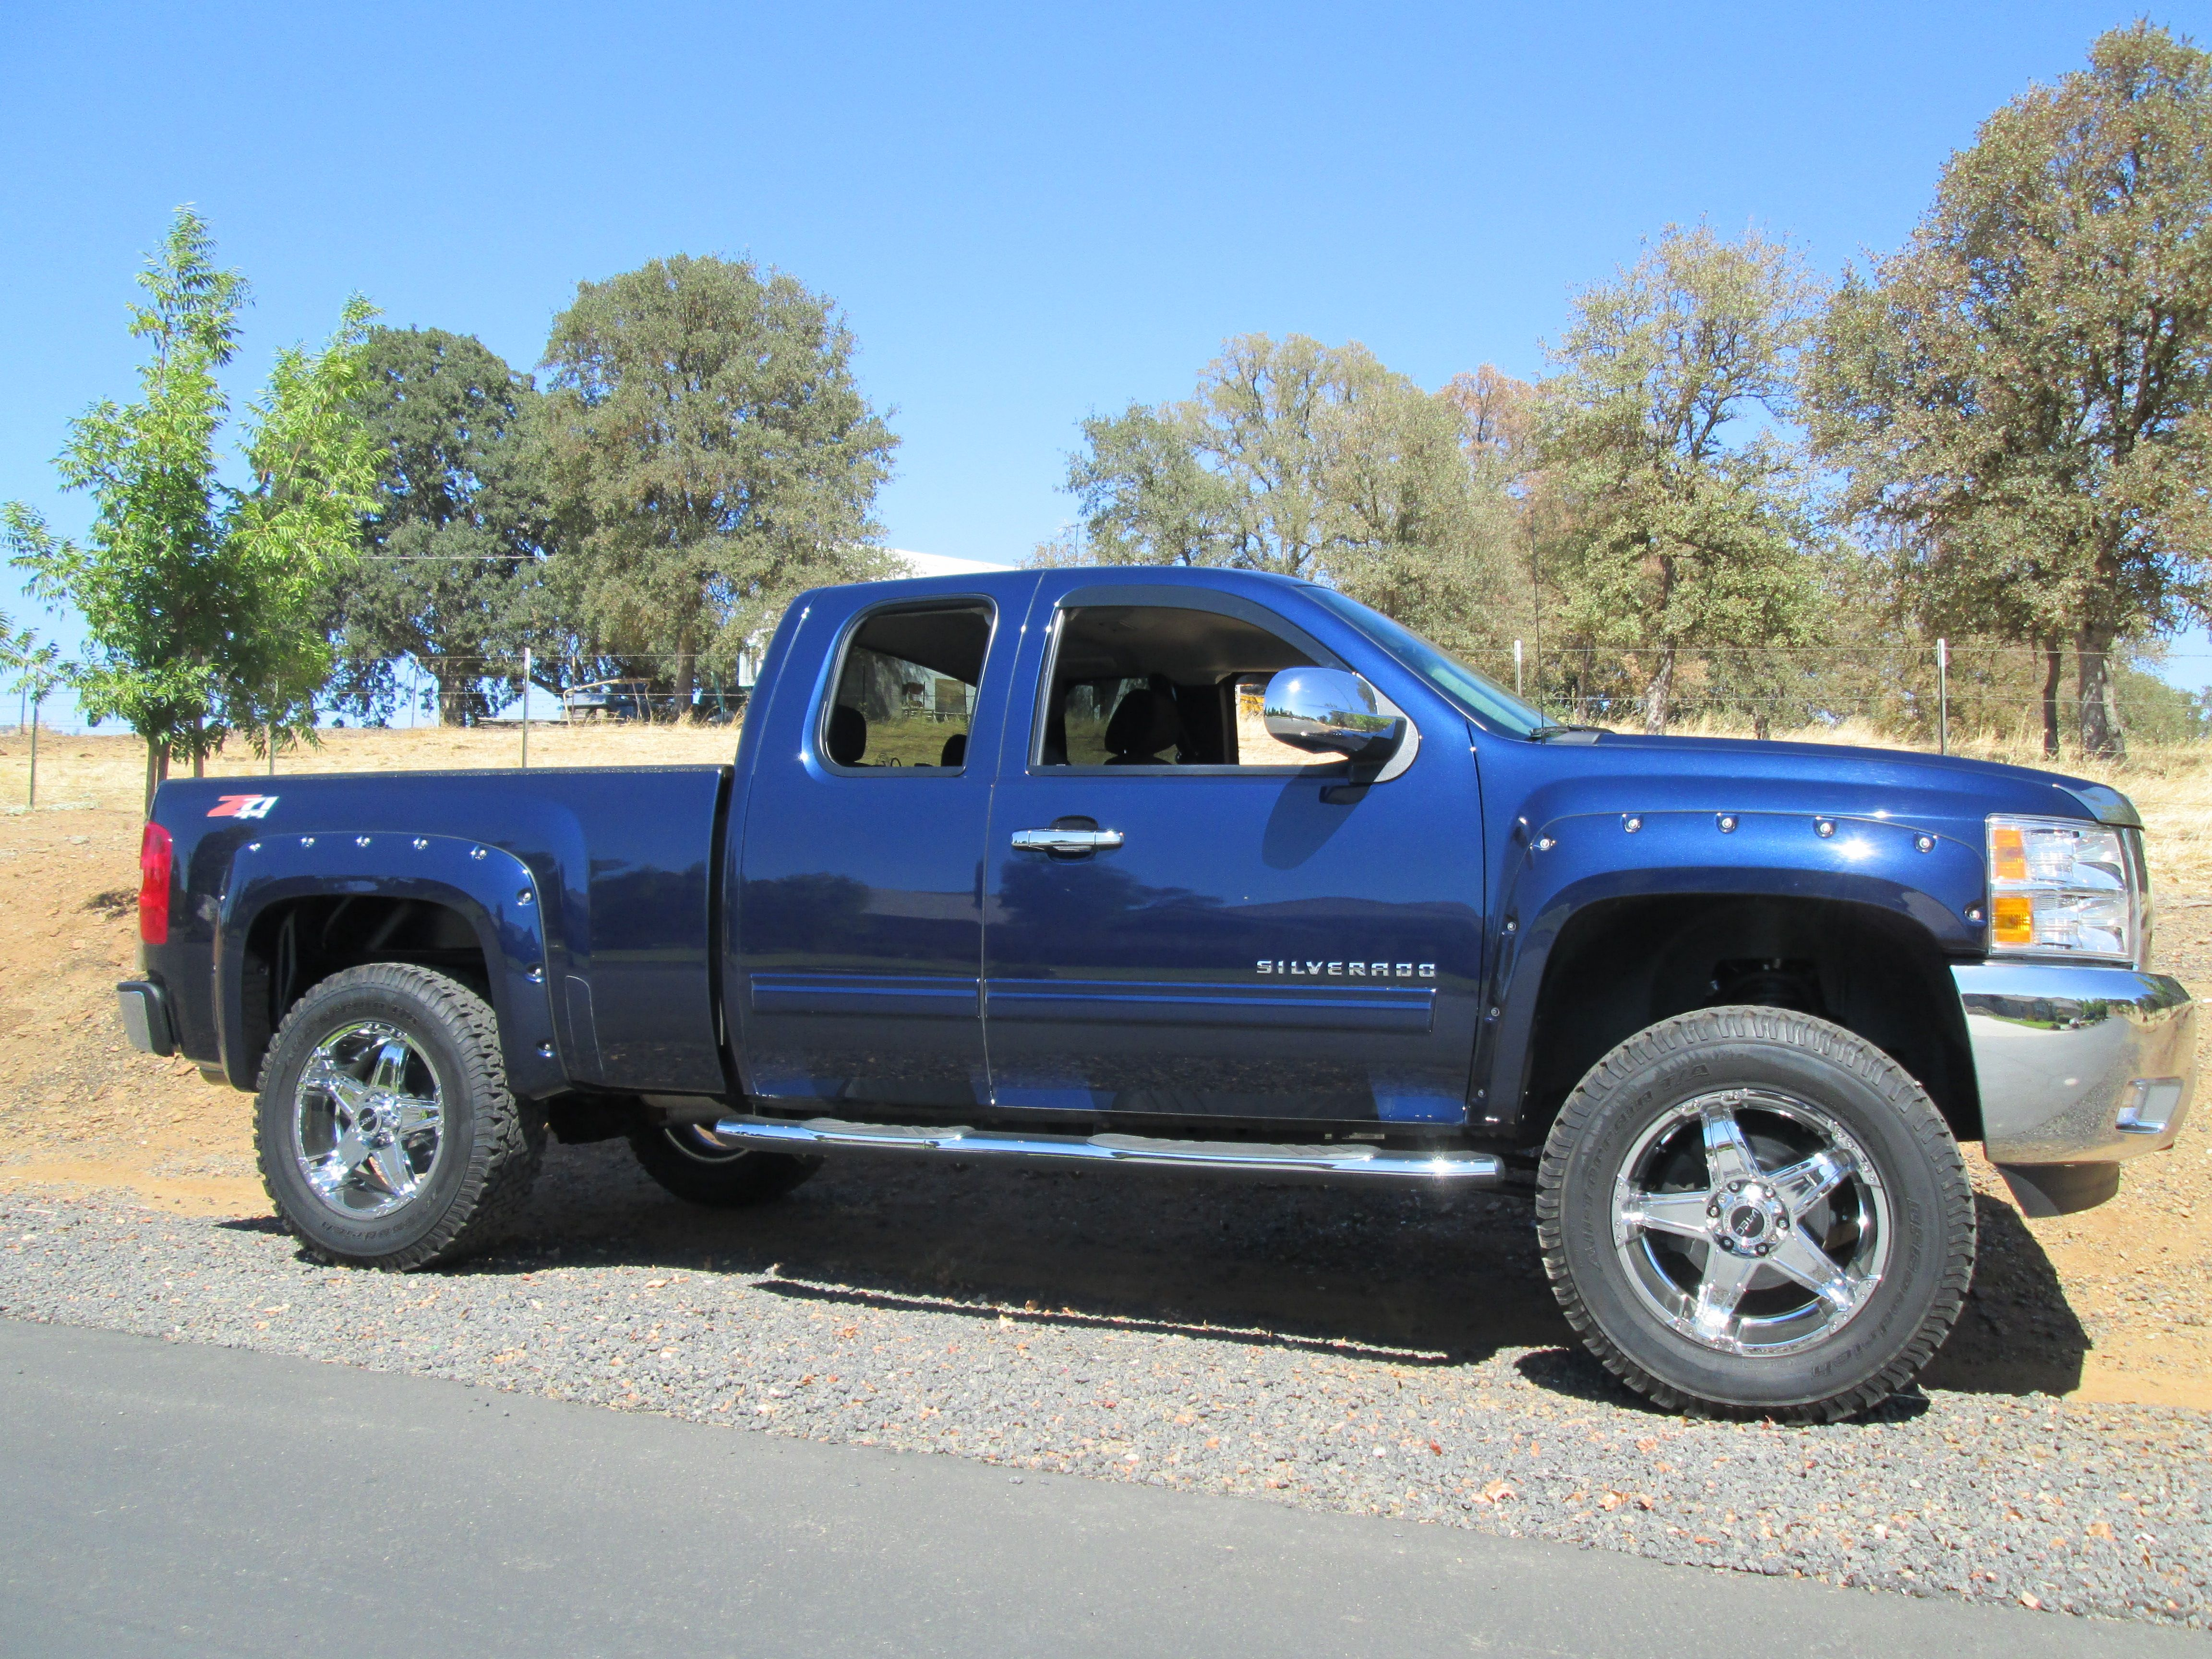 Rocky ridge 4 inch lift kit and custom body styling